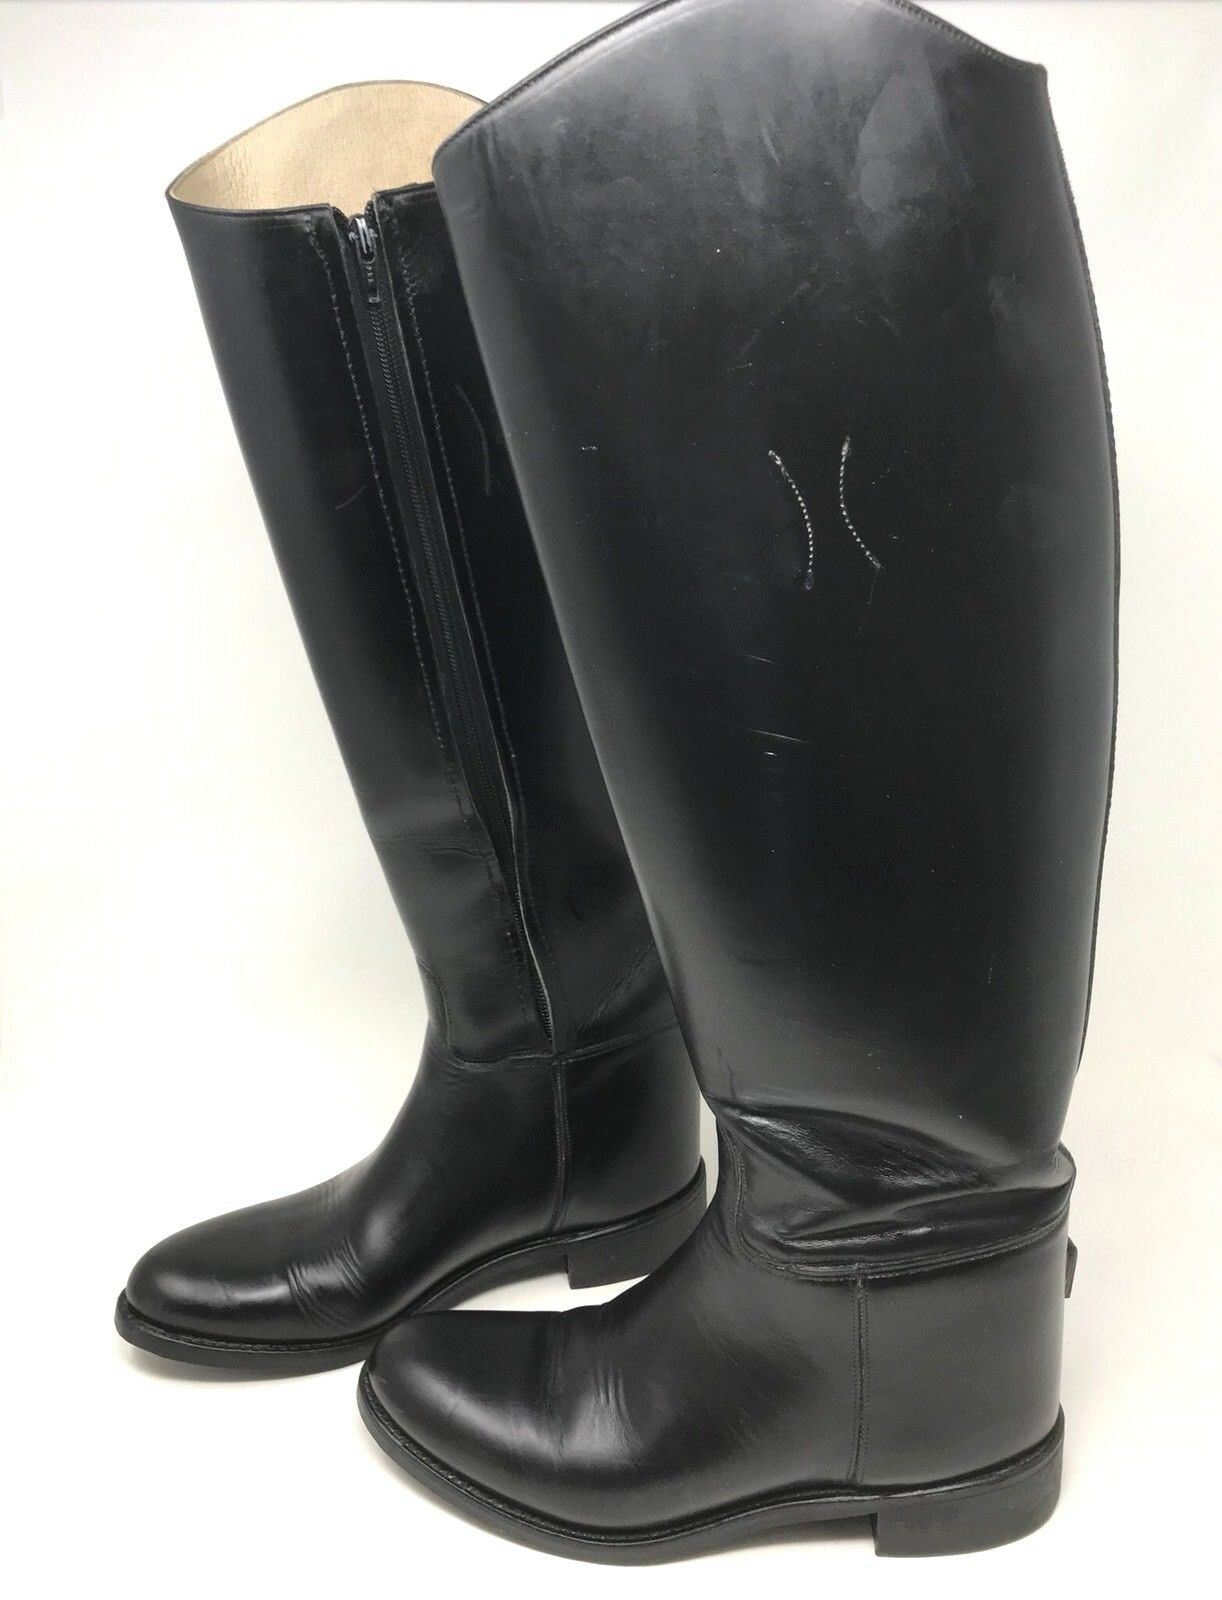 THE EFFINGHAM TALL LEATHER RIDING EQUESTRIAN BOOTS SIDE ZIPS WOMEN'S Size 7.5